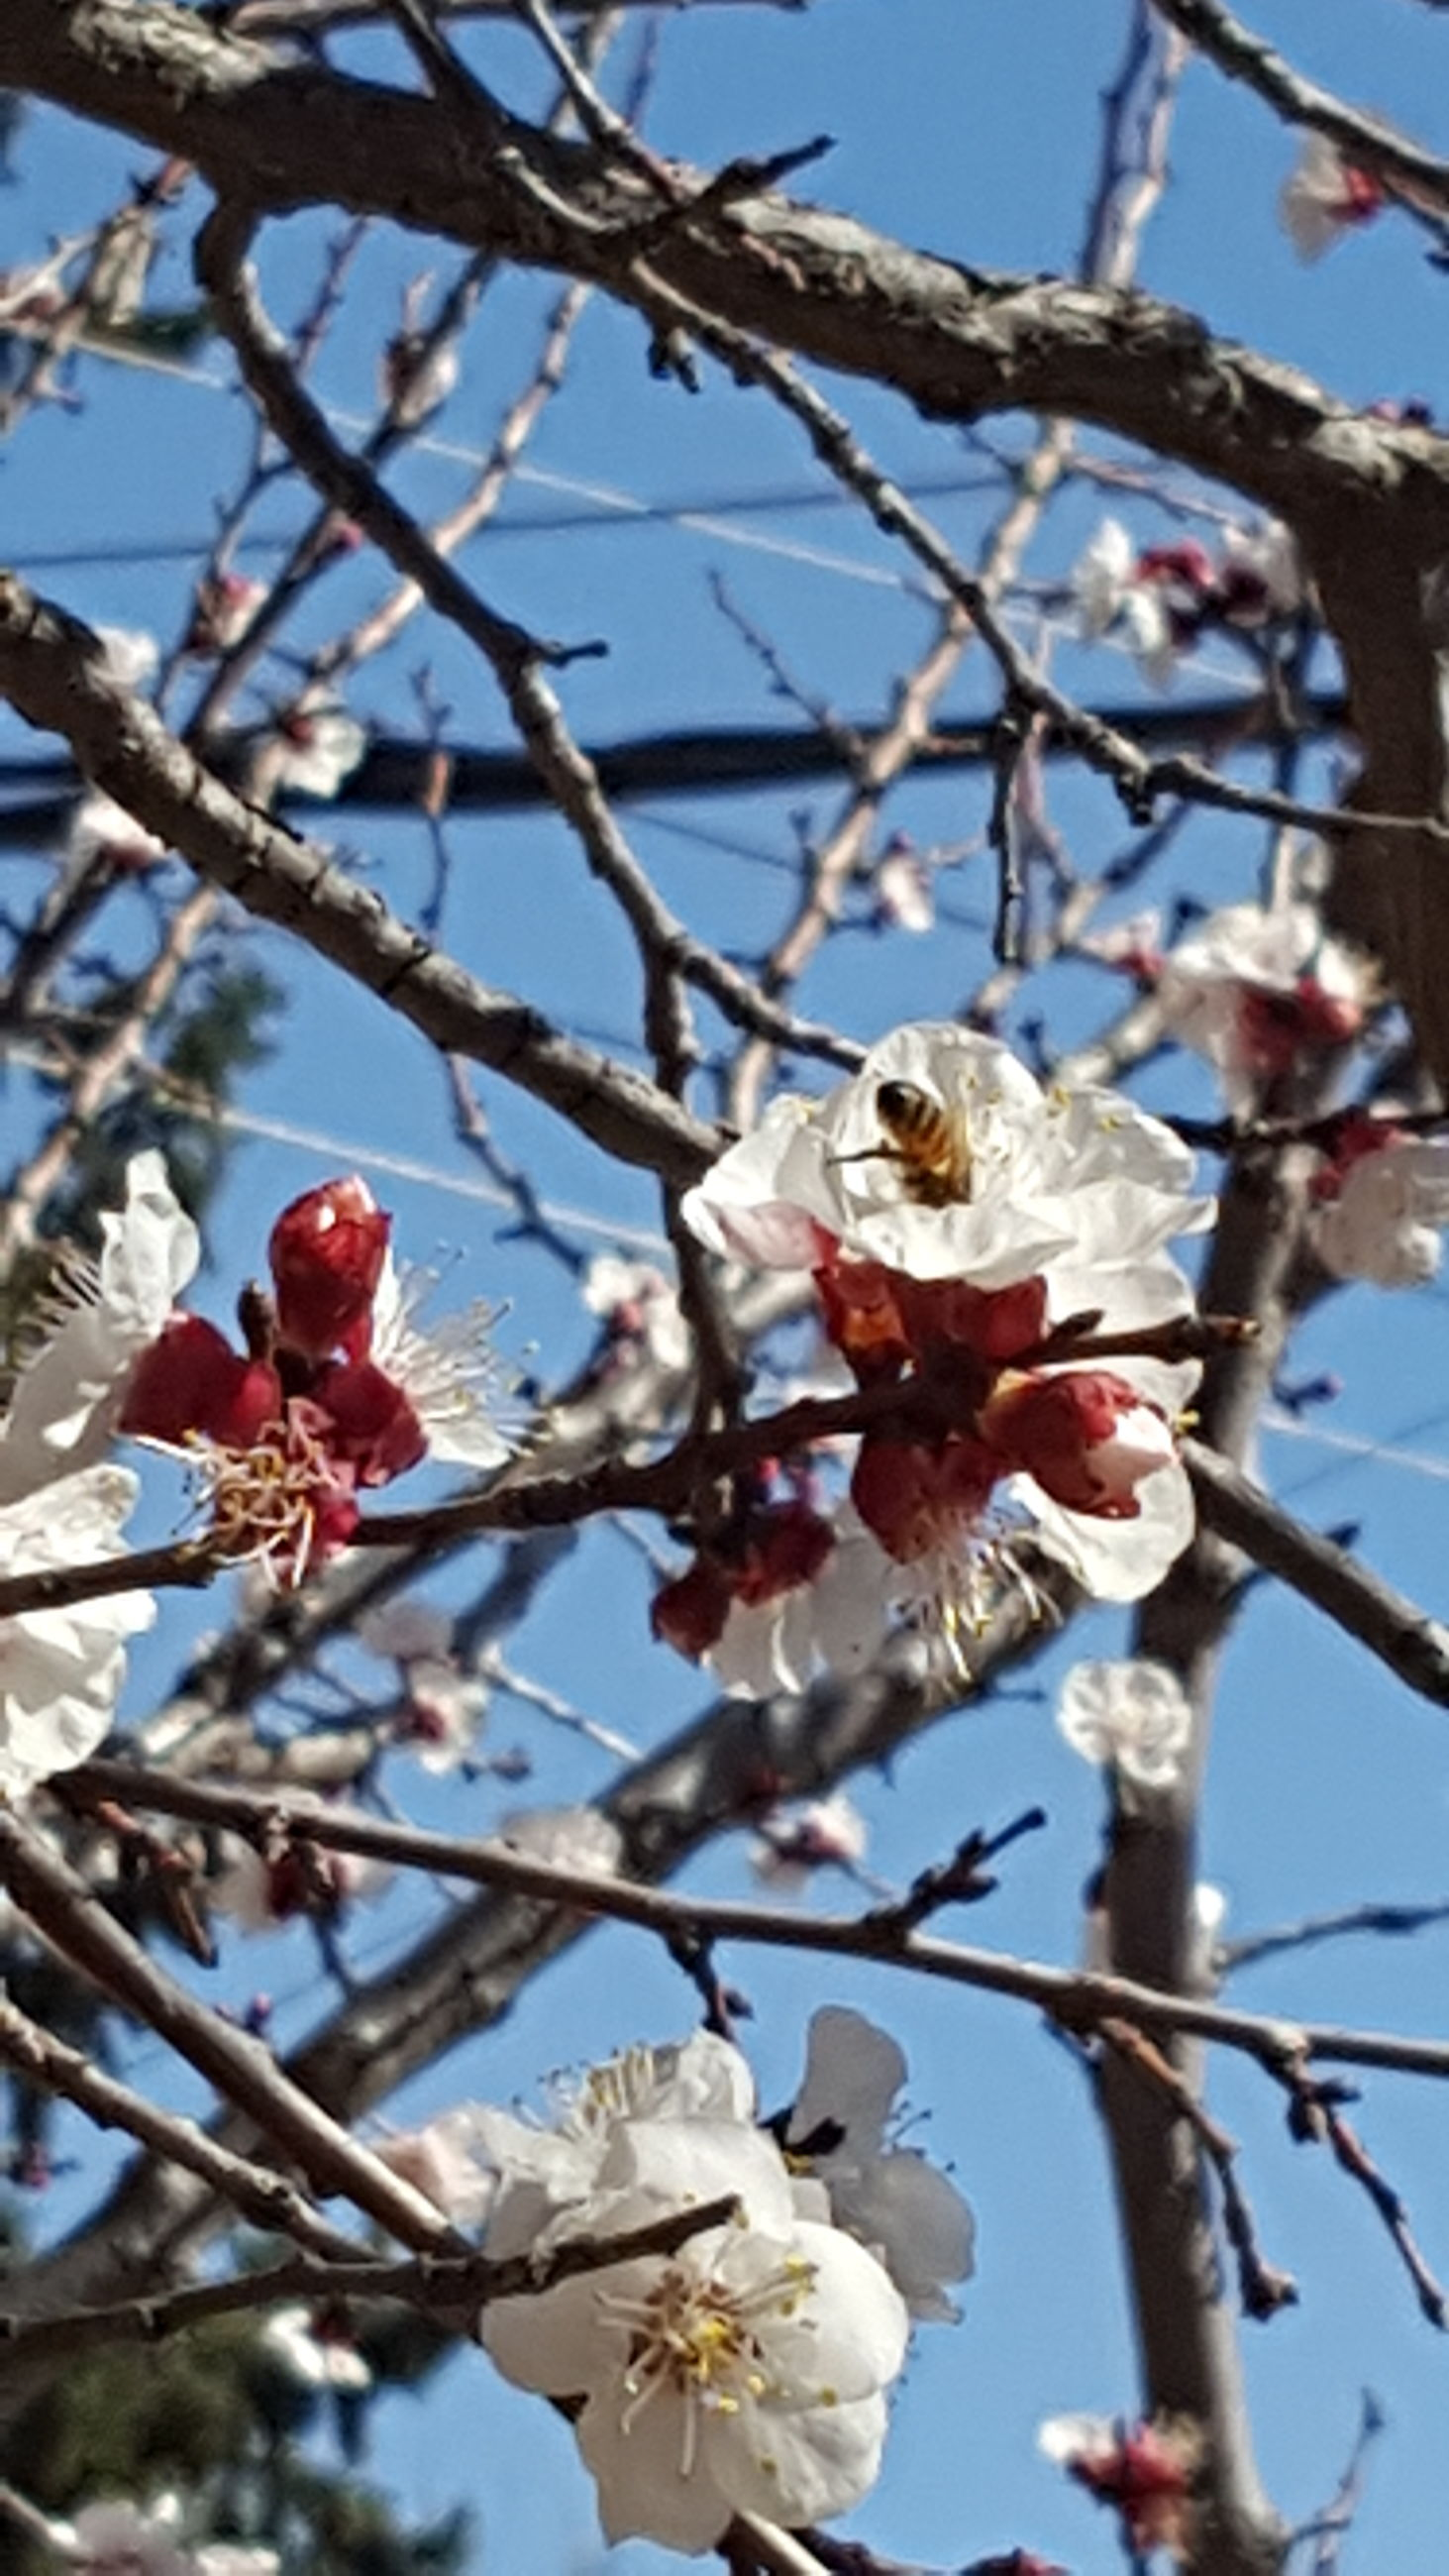 flower, tree, branch, low angle view, fragility, nature, beauty in nature, growth, day, blossom, springtime, freshness, white color, apple blossom, twig, outdoors, no people, plum blossom, petal, sky, close-up, clear sky, flower head